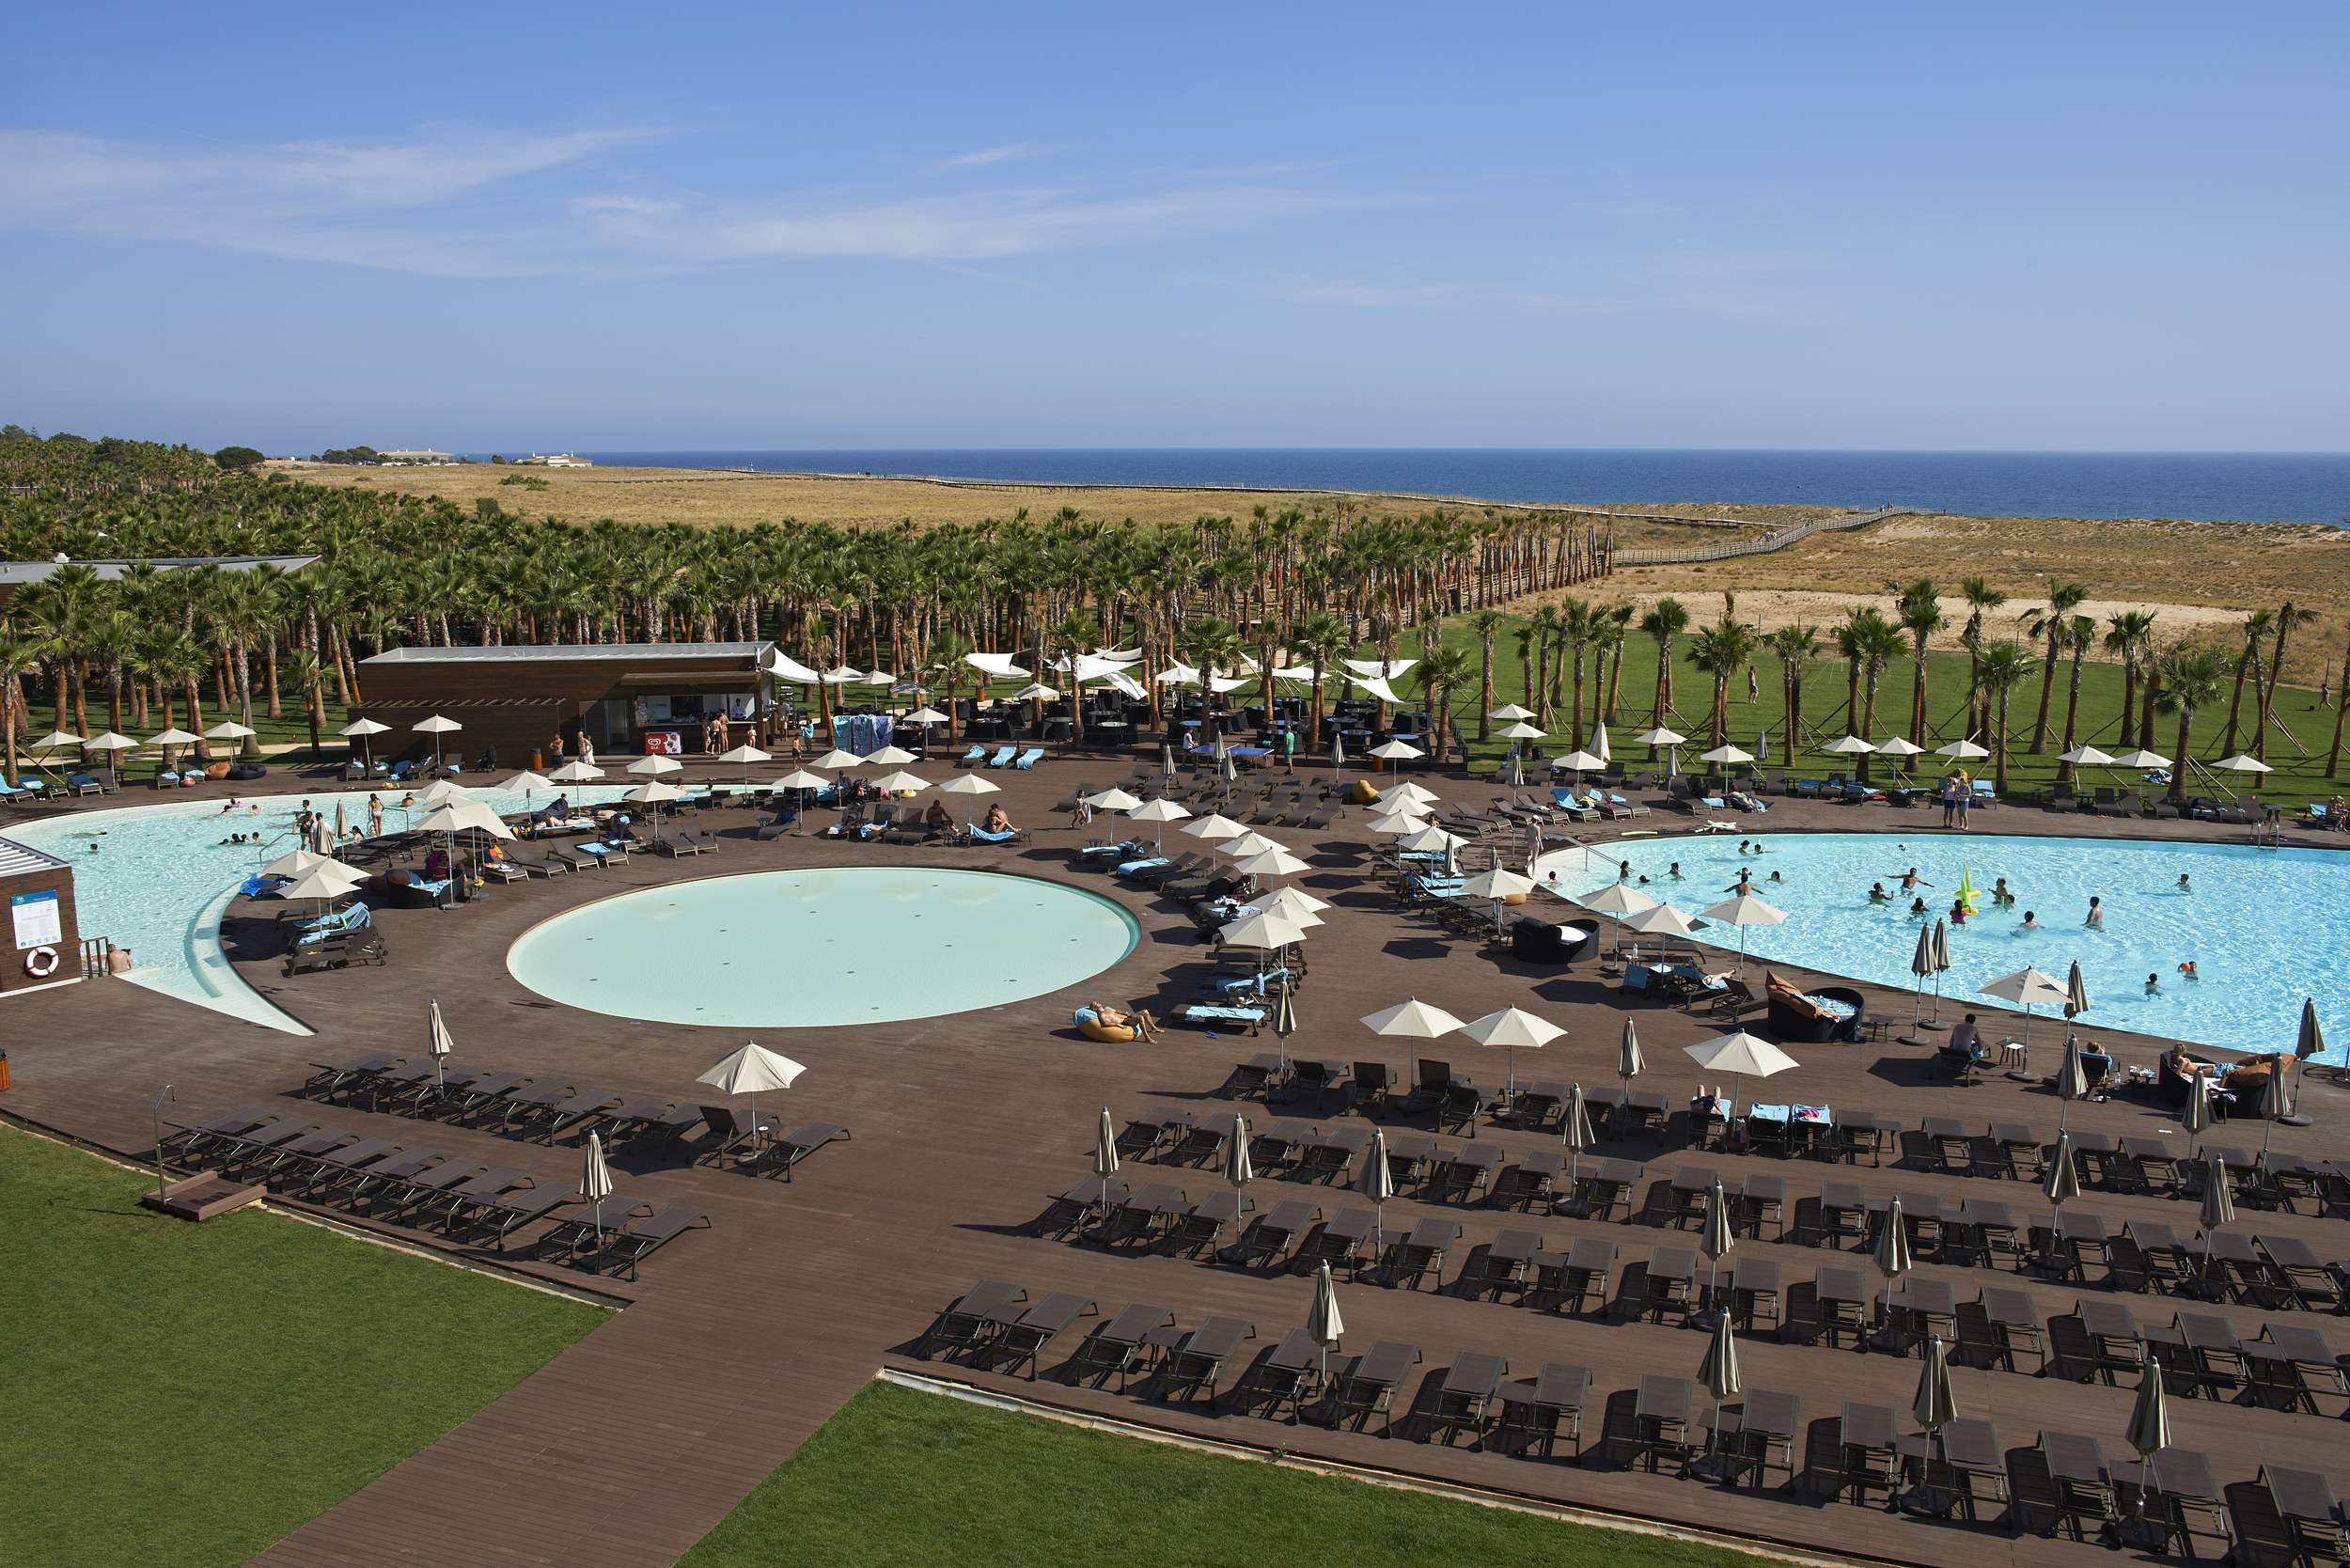 Vidamar Hotel Ocean View Room, HB, Family Room, 1 bedroom hotel in Vidamar Resort, Algarve Photo #2